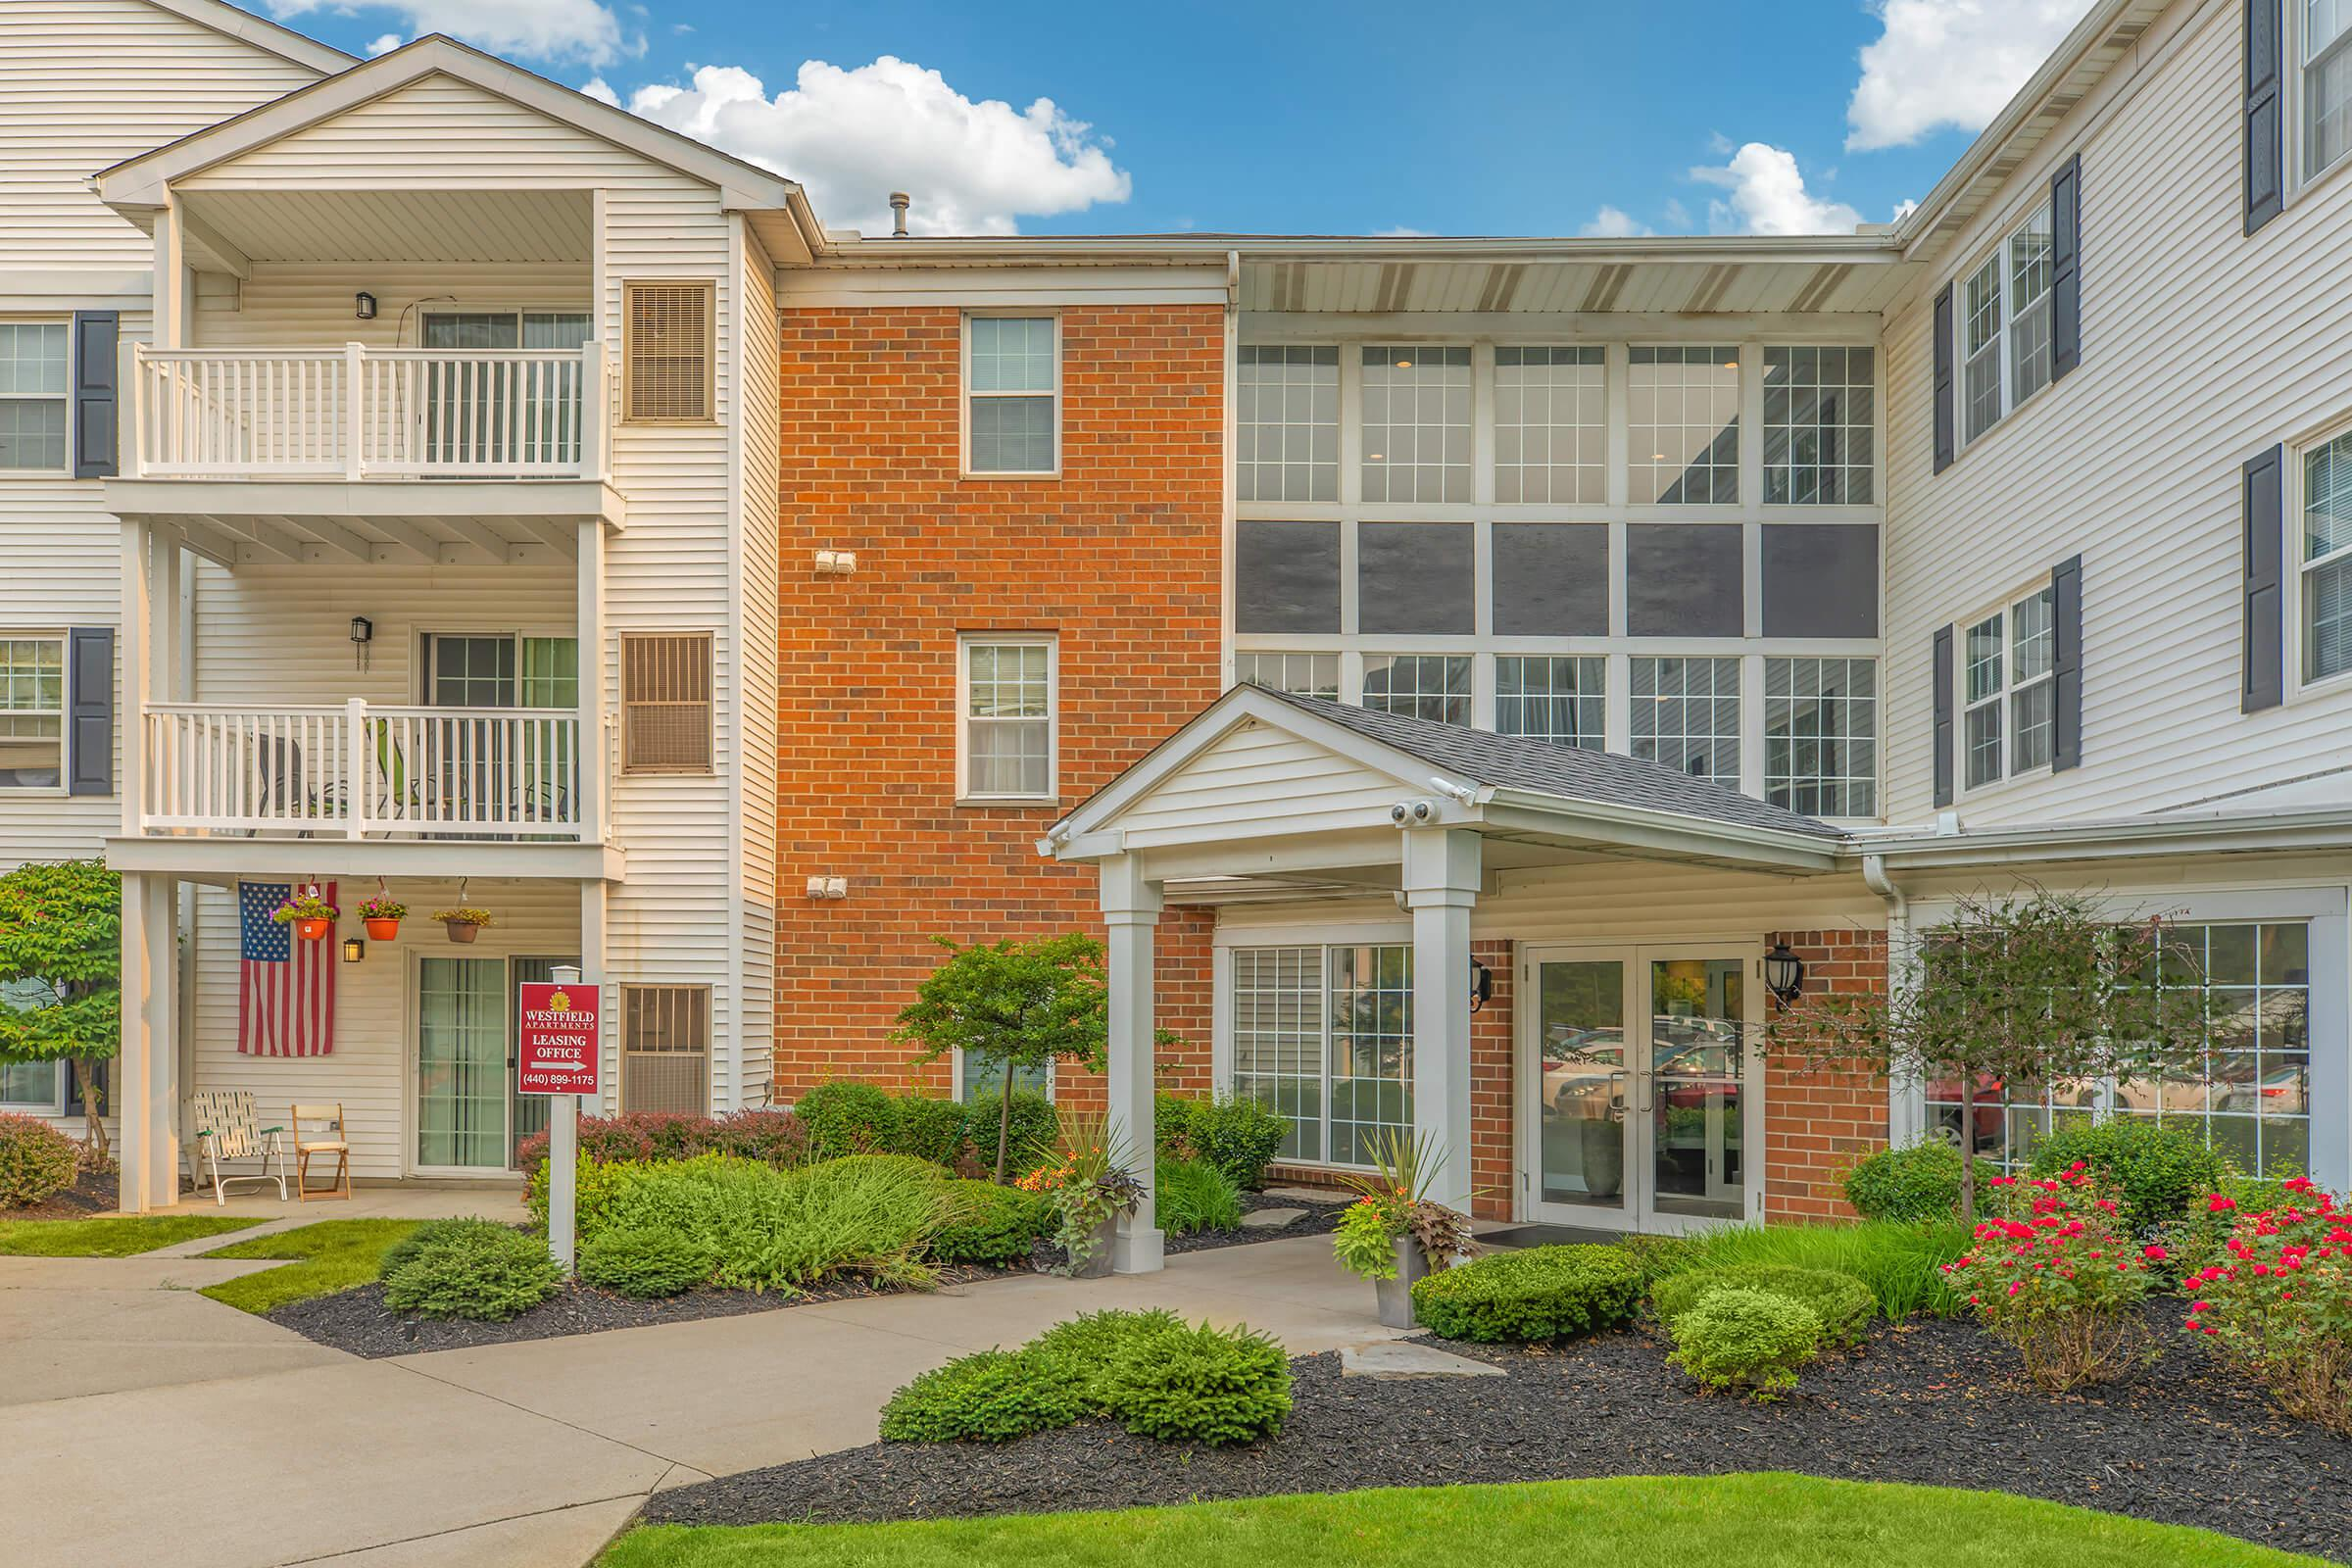 YOUR NEW HOME AWAITS AT WESTFIELD APARTMENTS